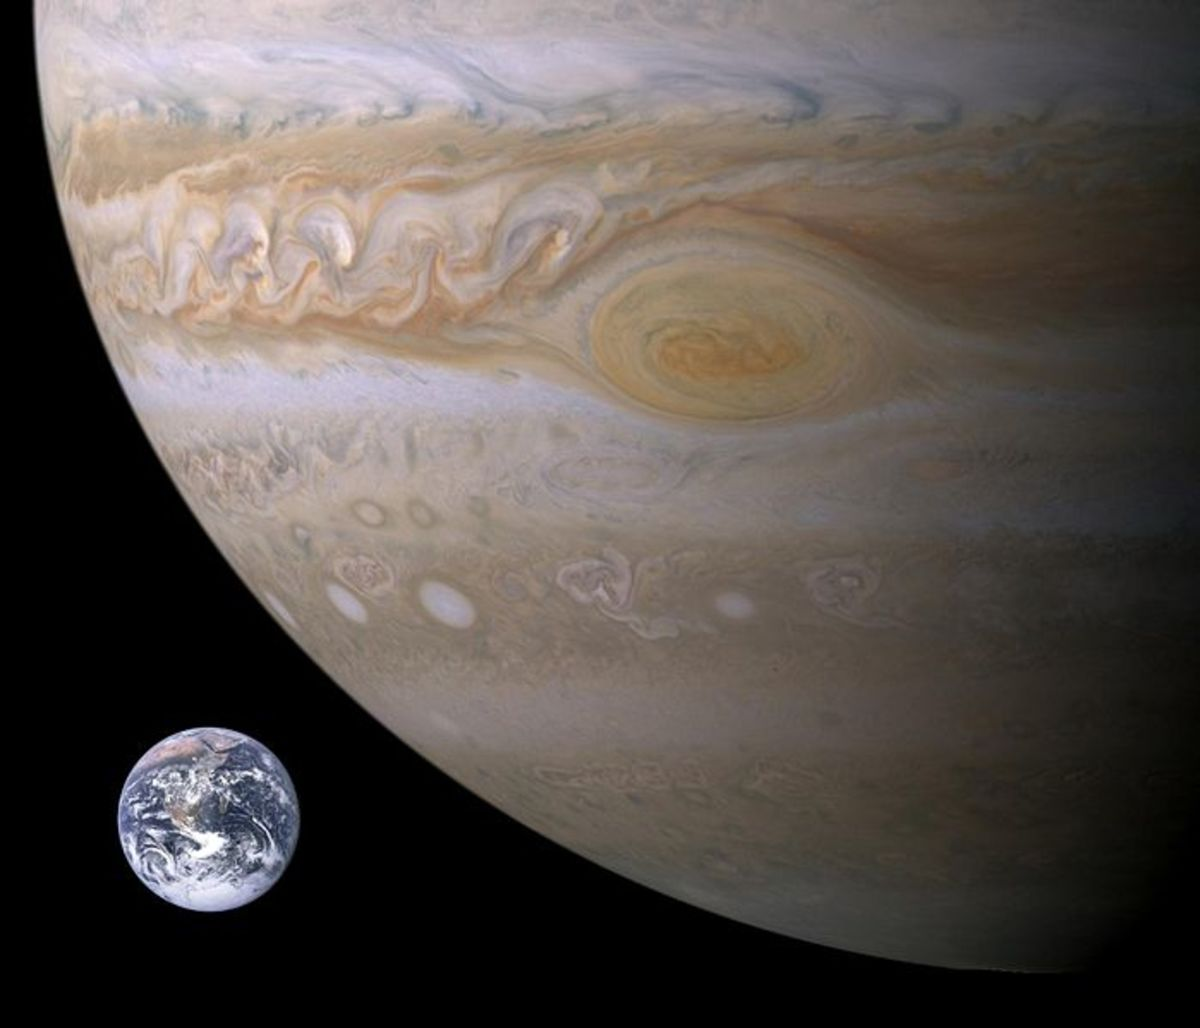 Earth in Comparison to Jupiter.